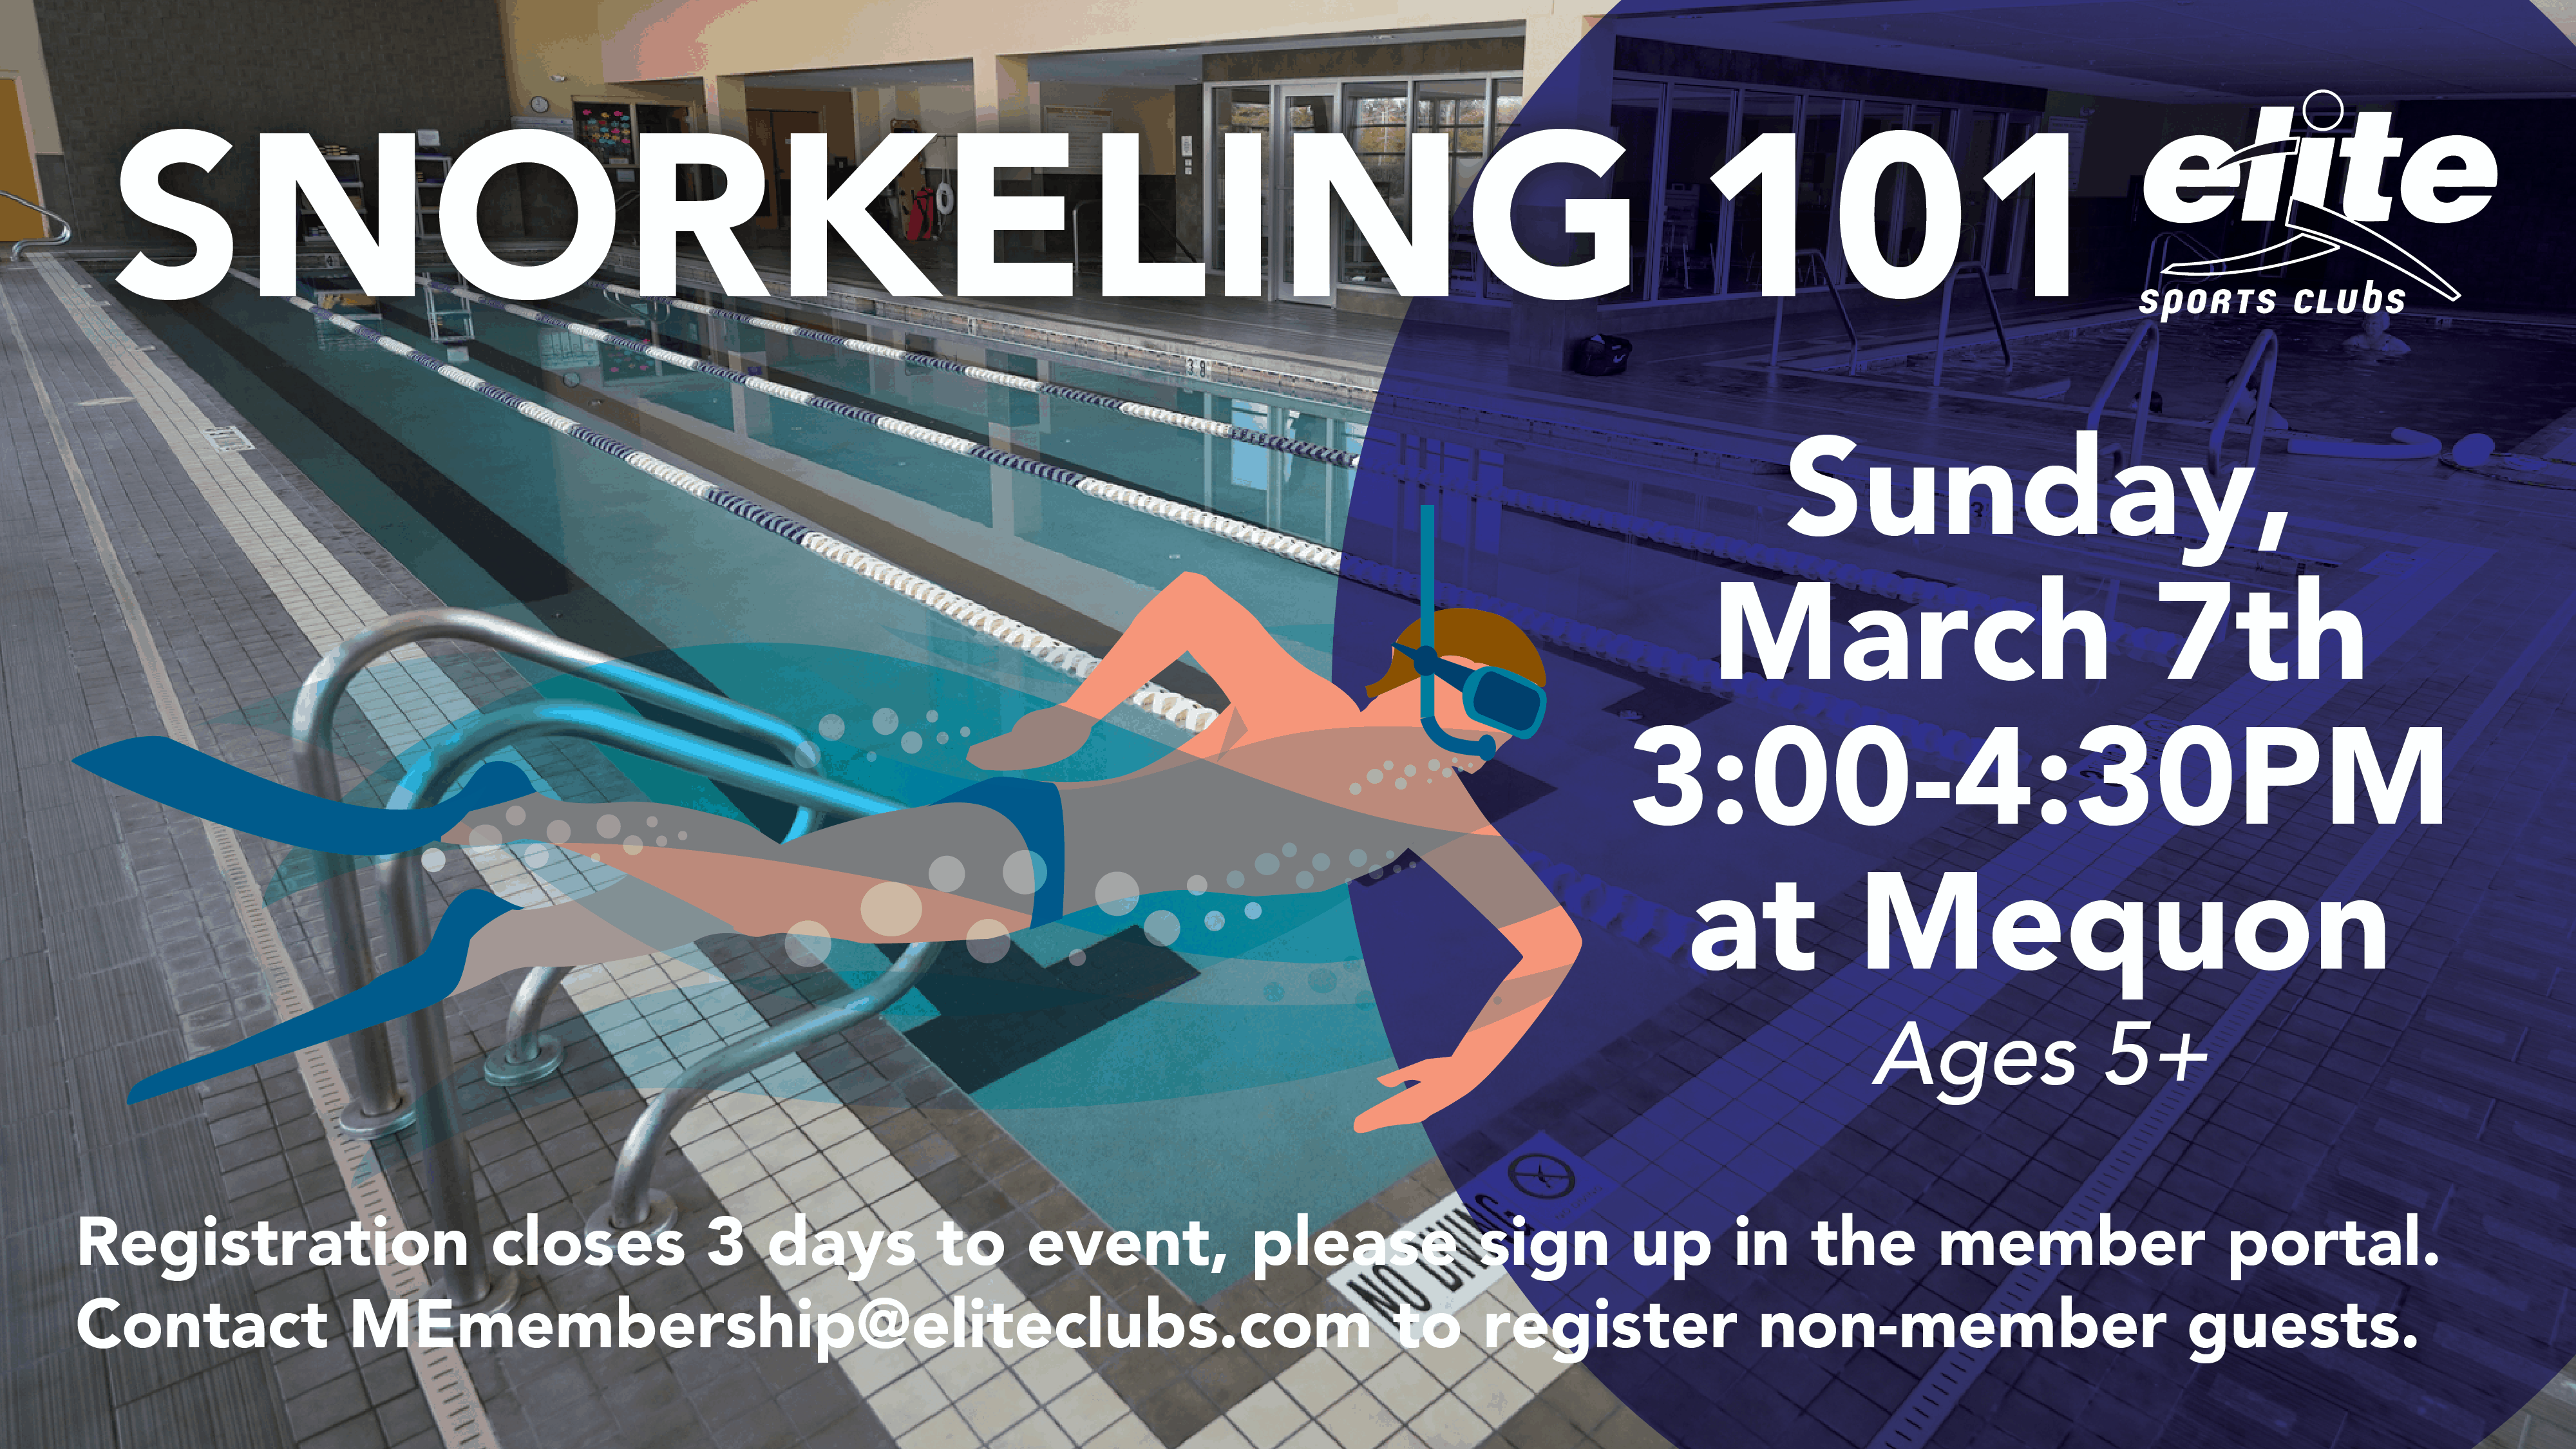 Snorkeling 101 - Elite Mequon - March 2021